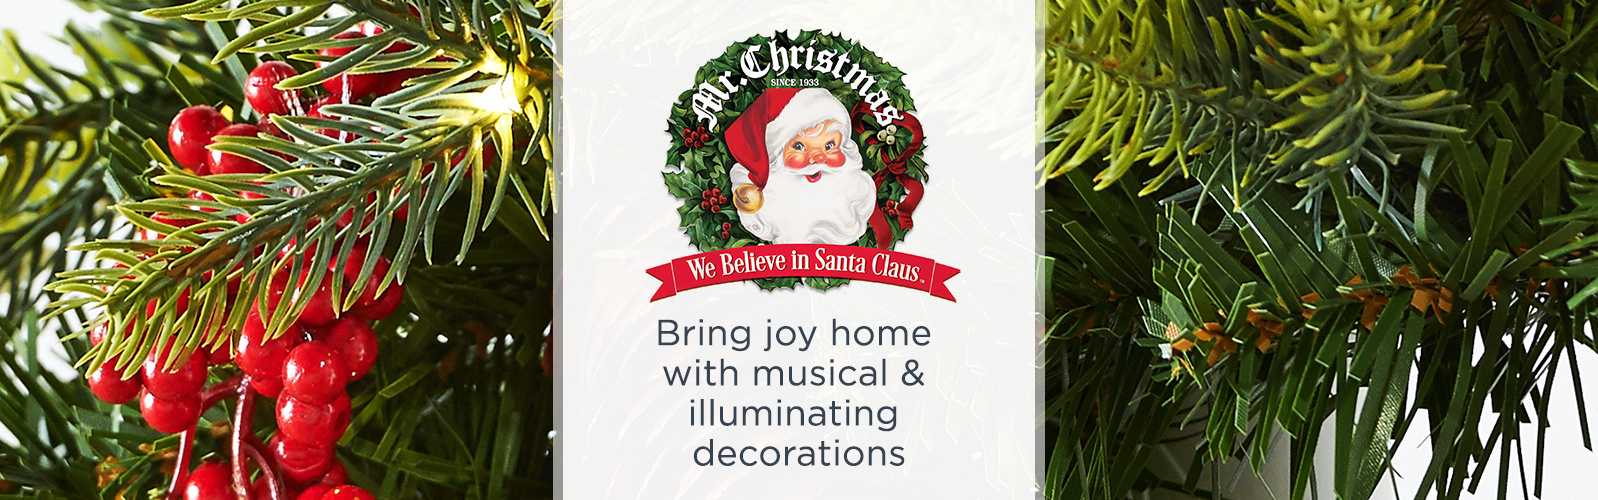 mr christmas bring joy home with musical illuminating decorations - Mr Christmas Outdoor Decorations